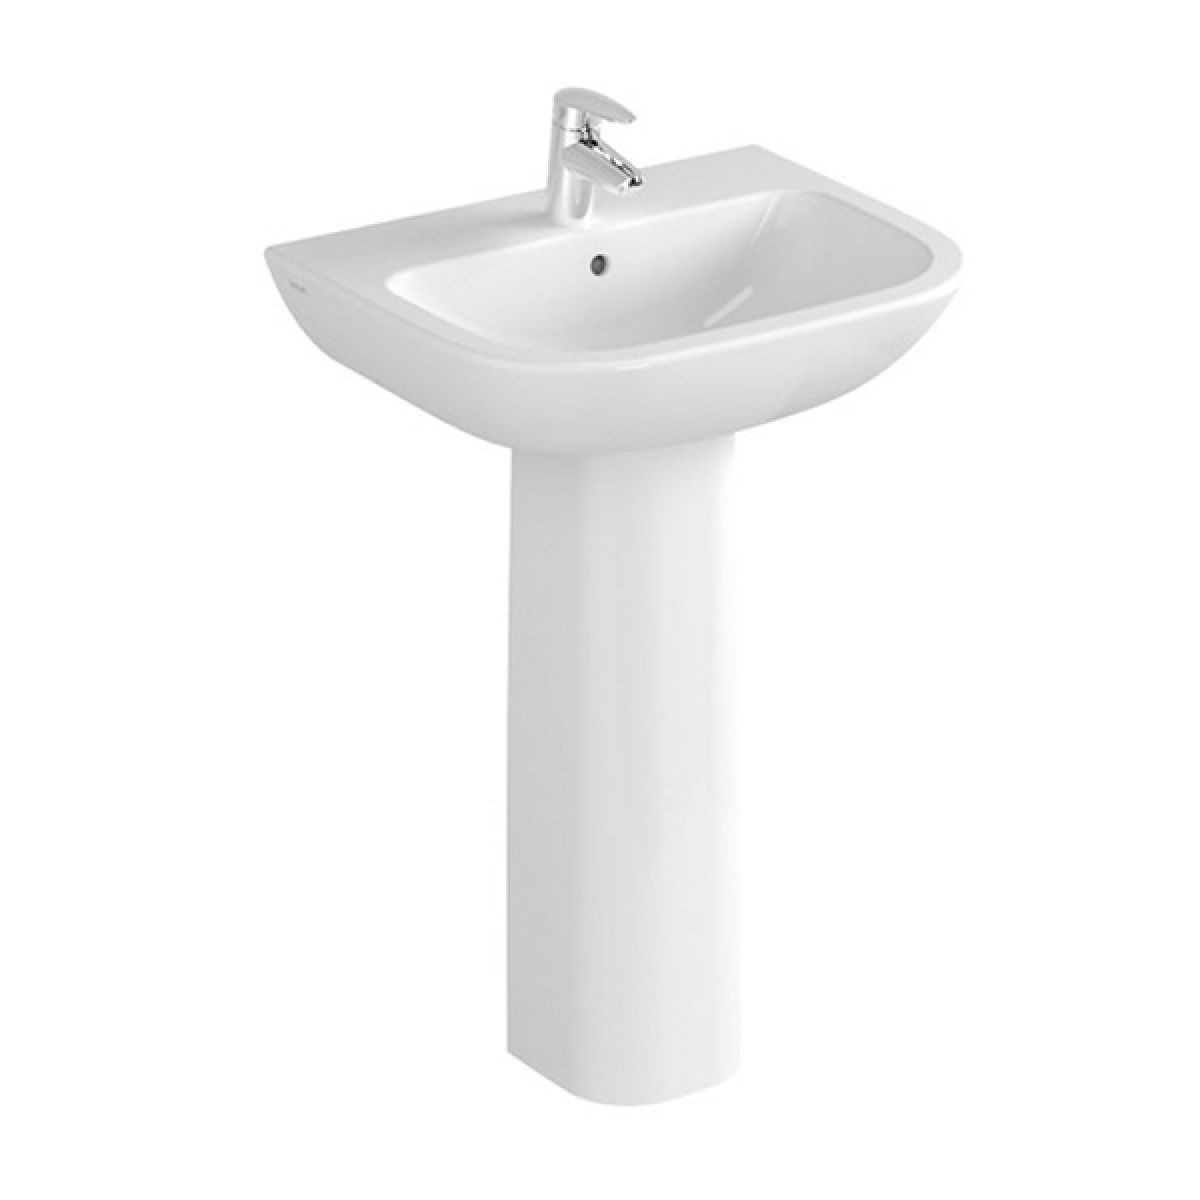 Vitra S20 1 Tap Hole Cloakroom Basin with Full Pedestal 450mm